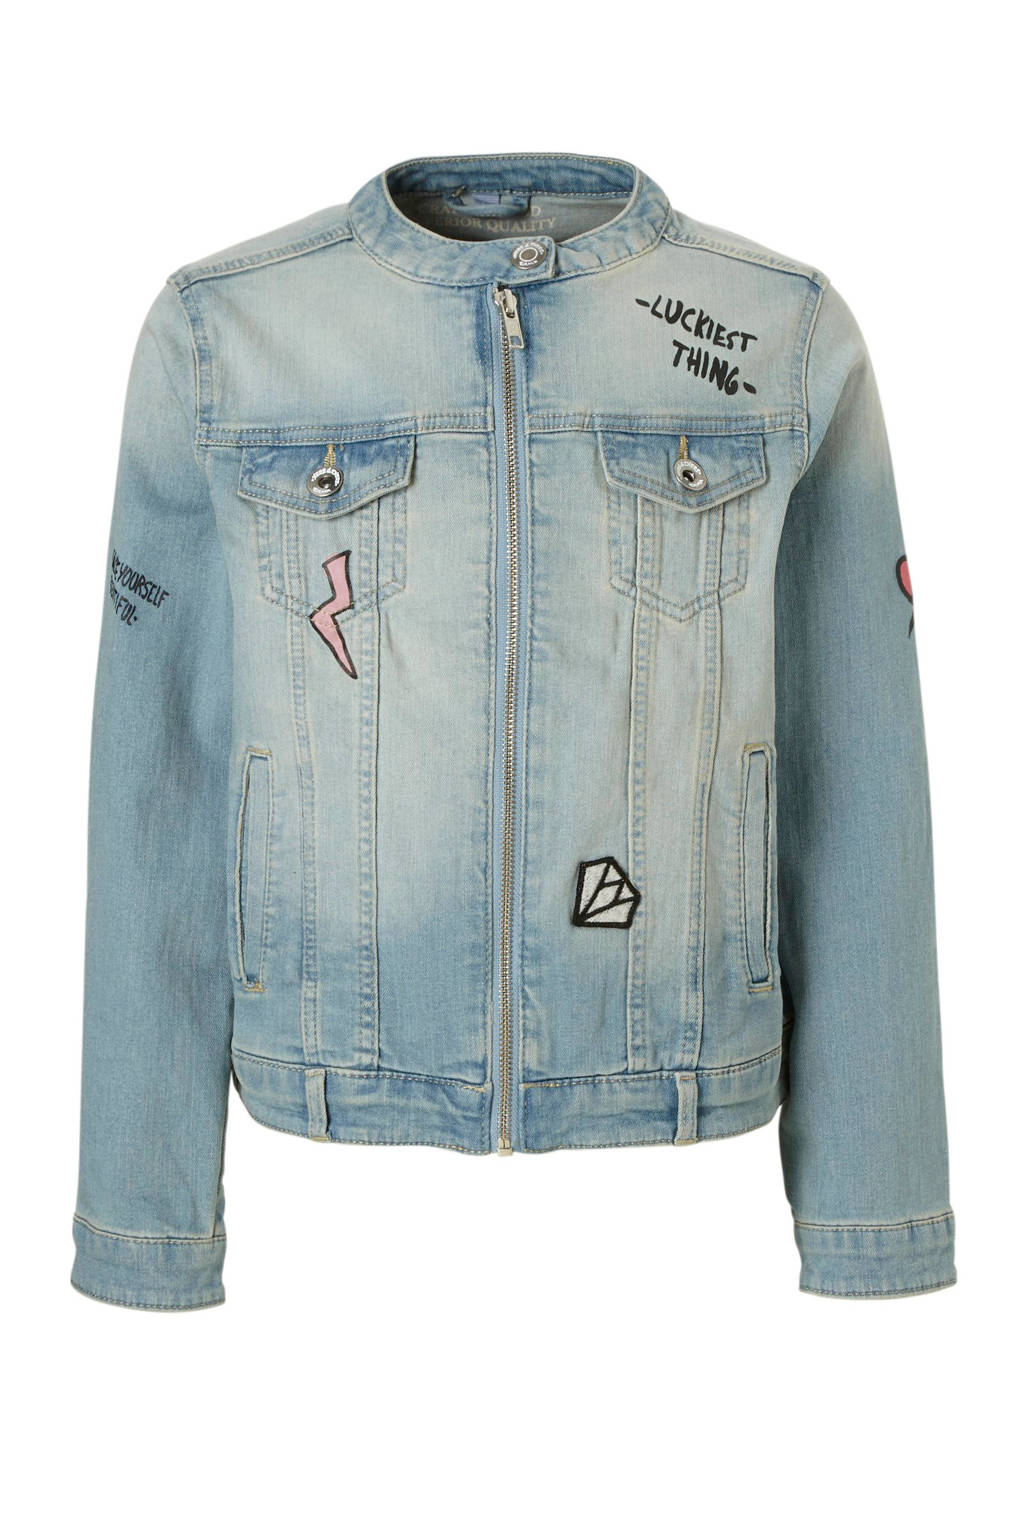 C&A Here & There spijkerjas met tekst en patches, Light stonewashed